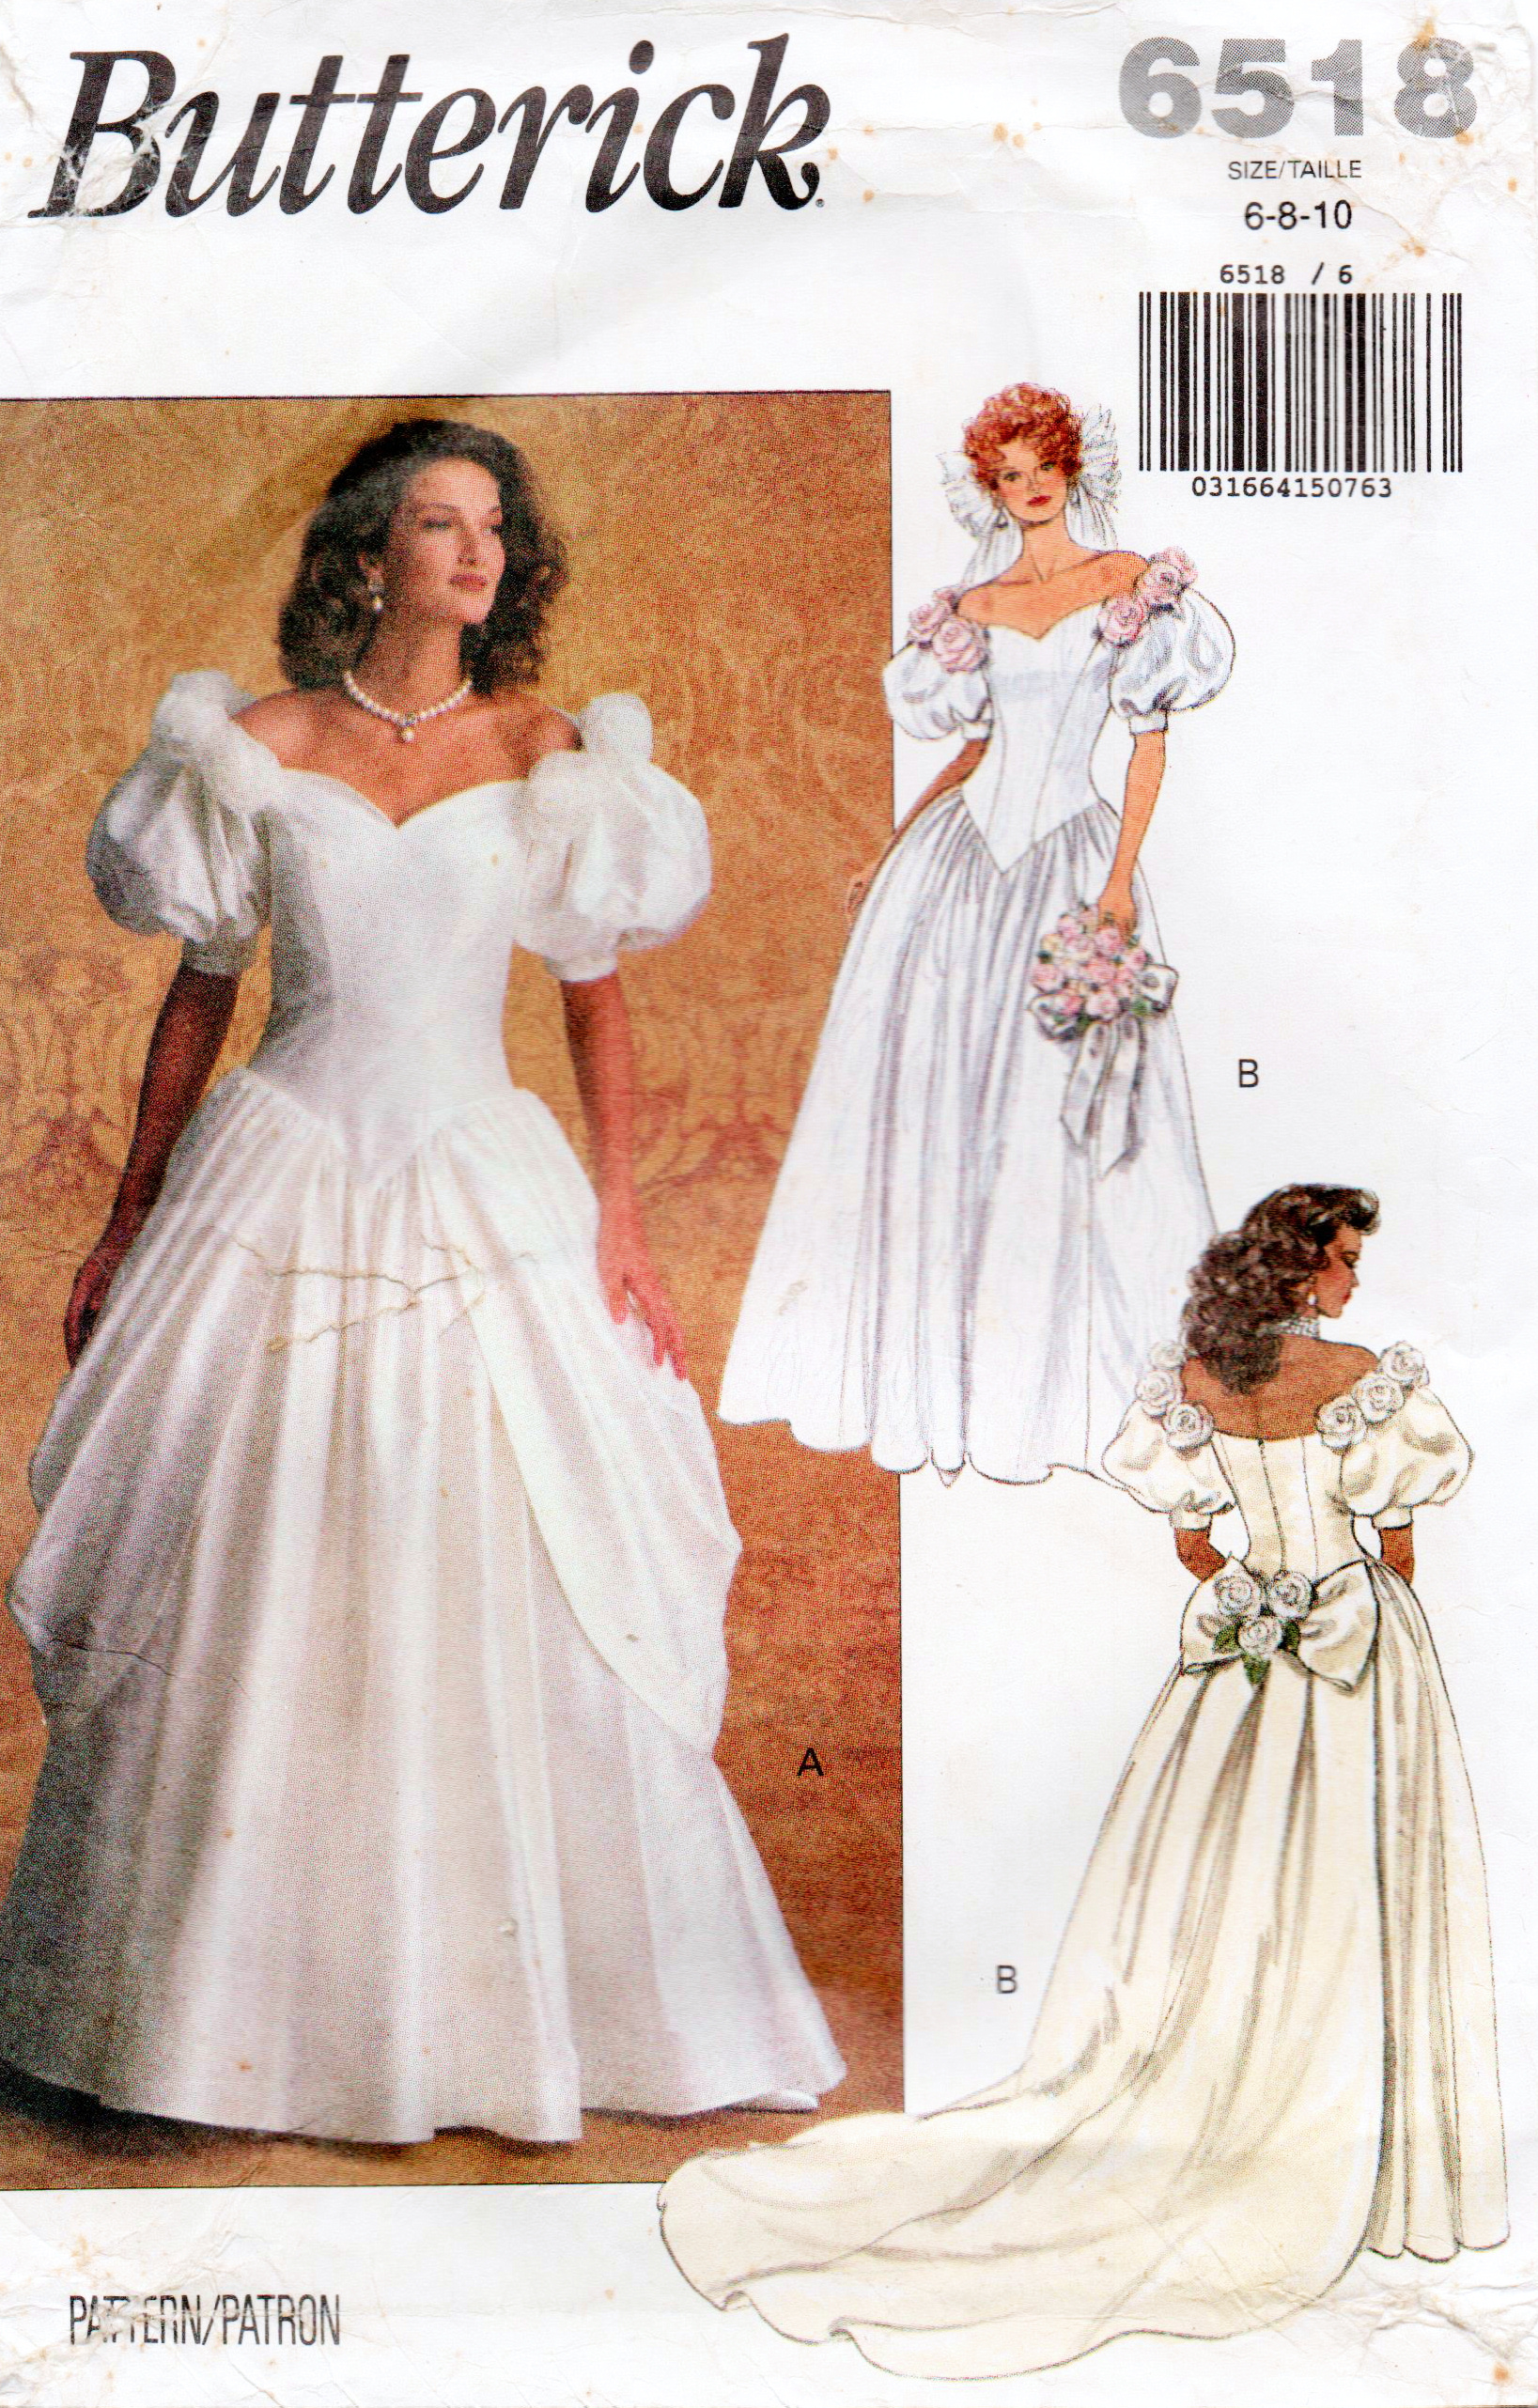 Butterick 6518 B   Vintage Sewing Patterns   FANDOM powered by Wikia